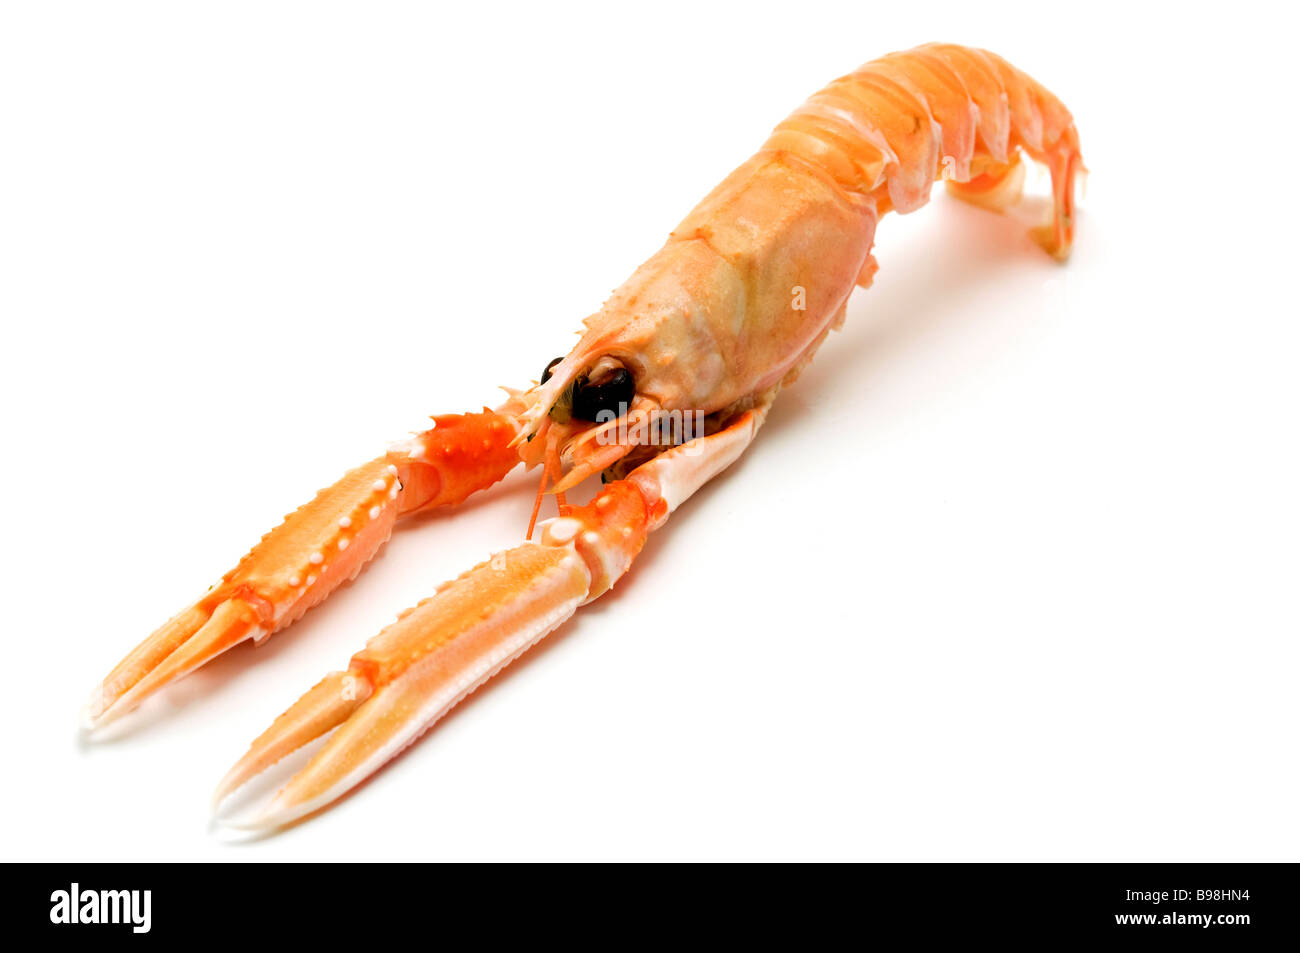 Norway lobster Nephrops norvegicus on a white background - Stock Image